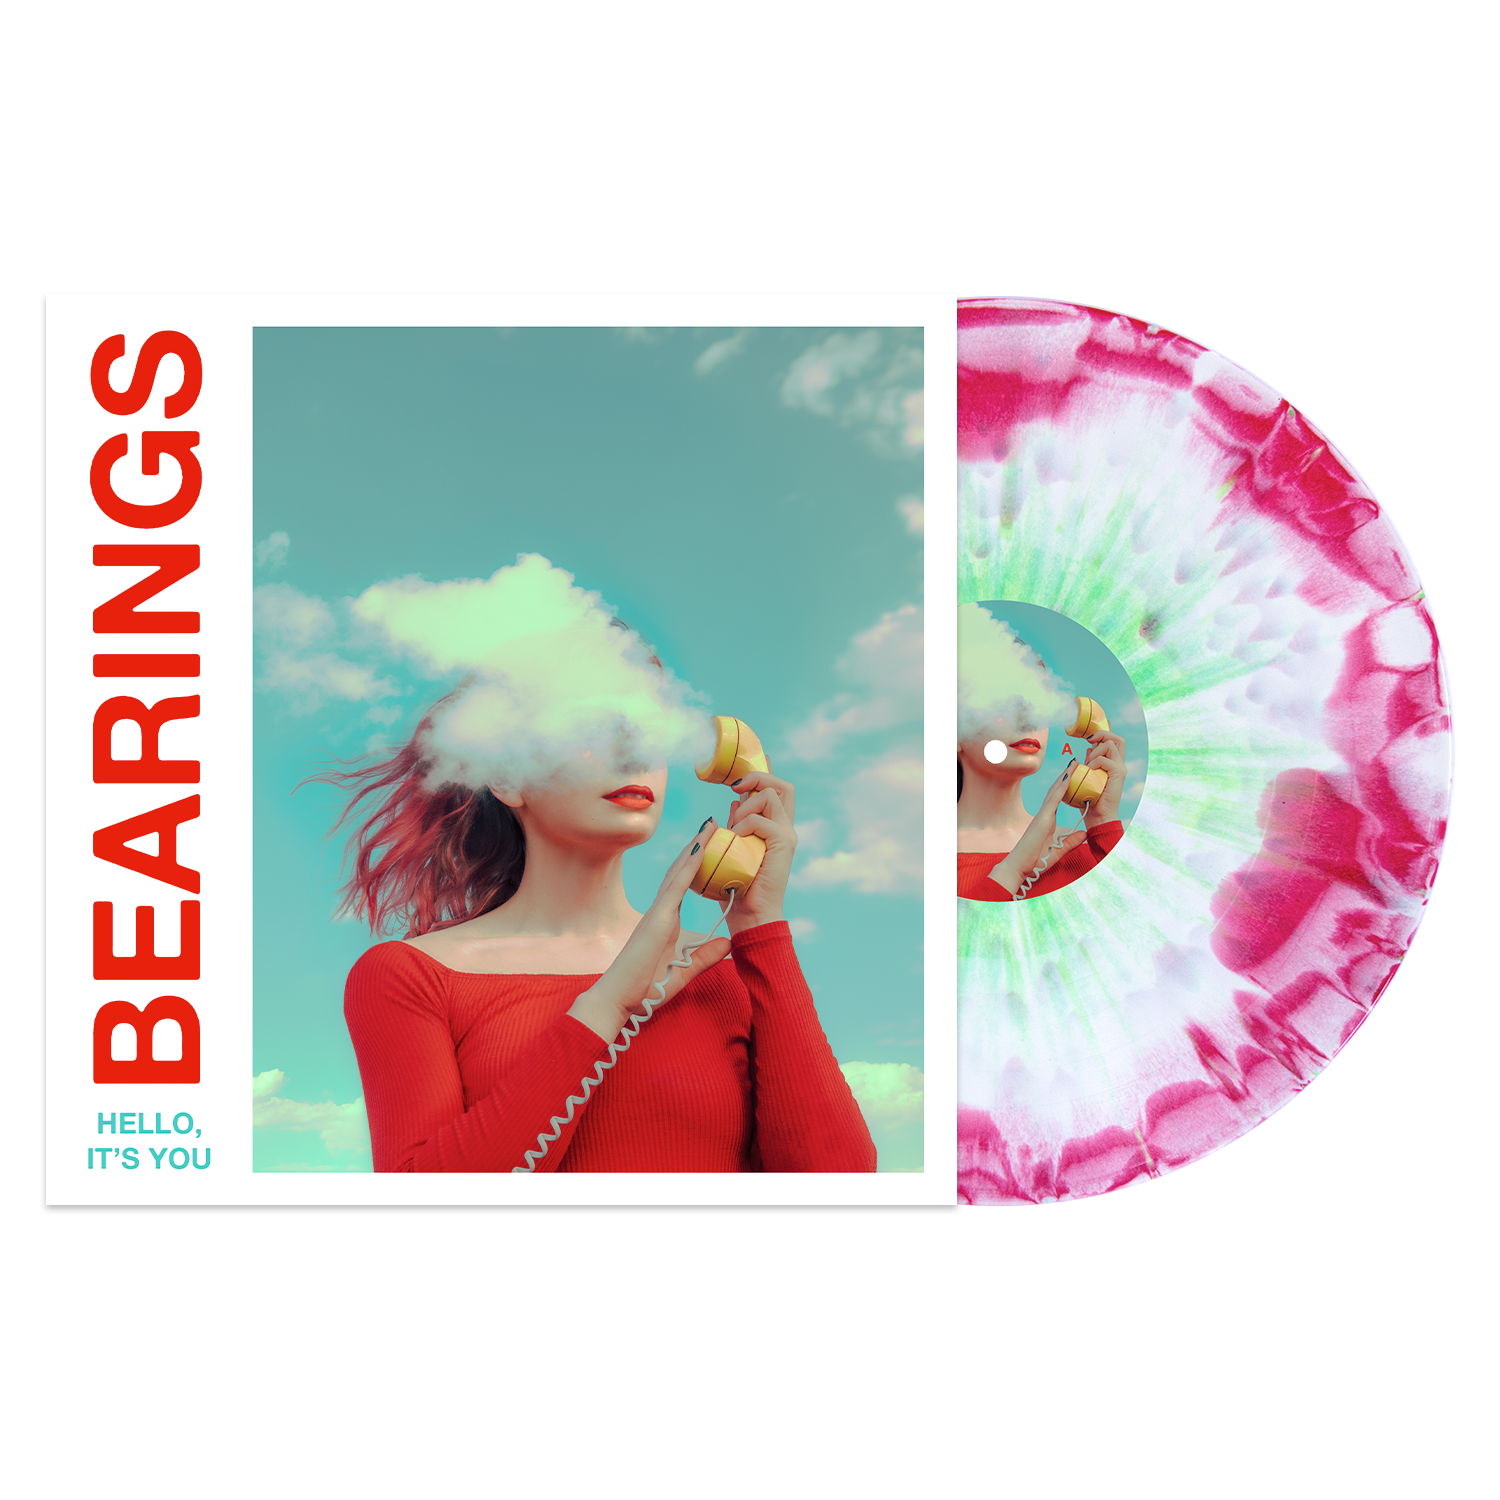 Bearings 'Hello, It's You' PN Exclusive 1 - White / Red(ish) aside/bside with heavy Doublemint splatter